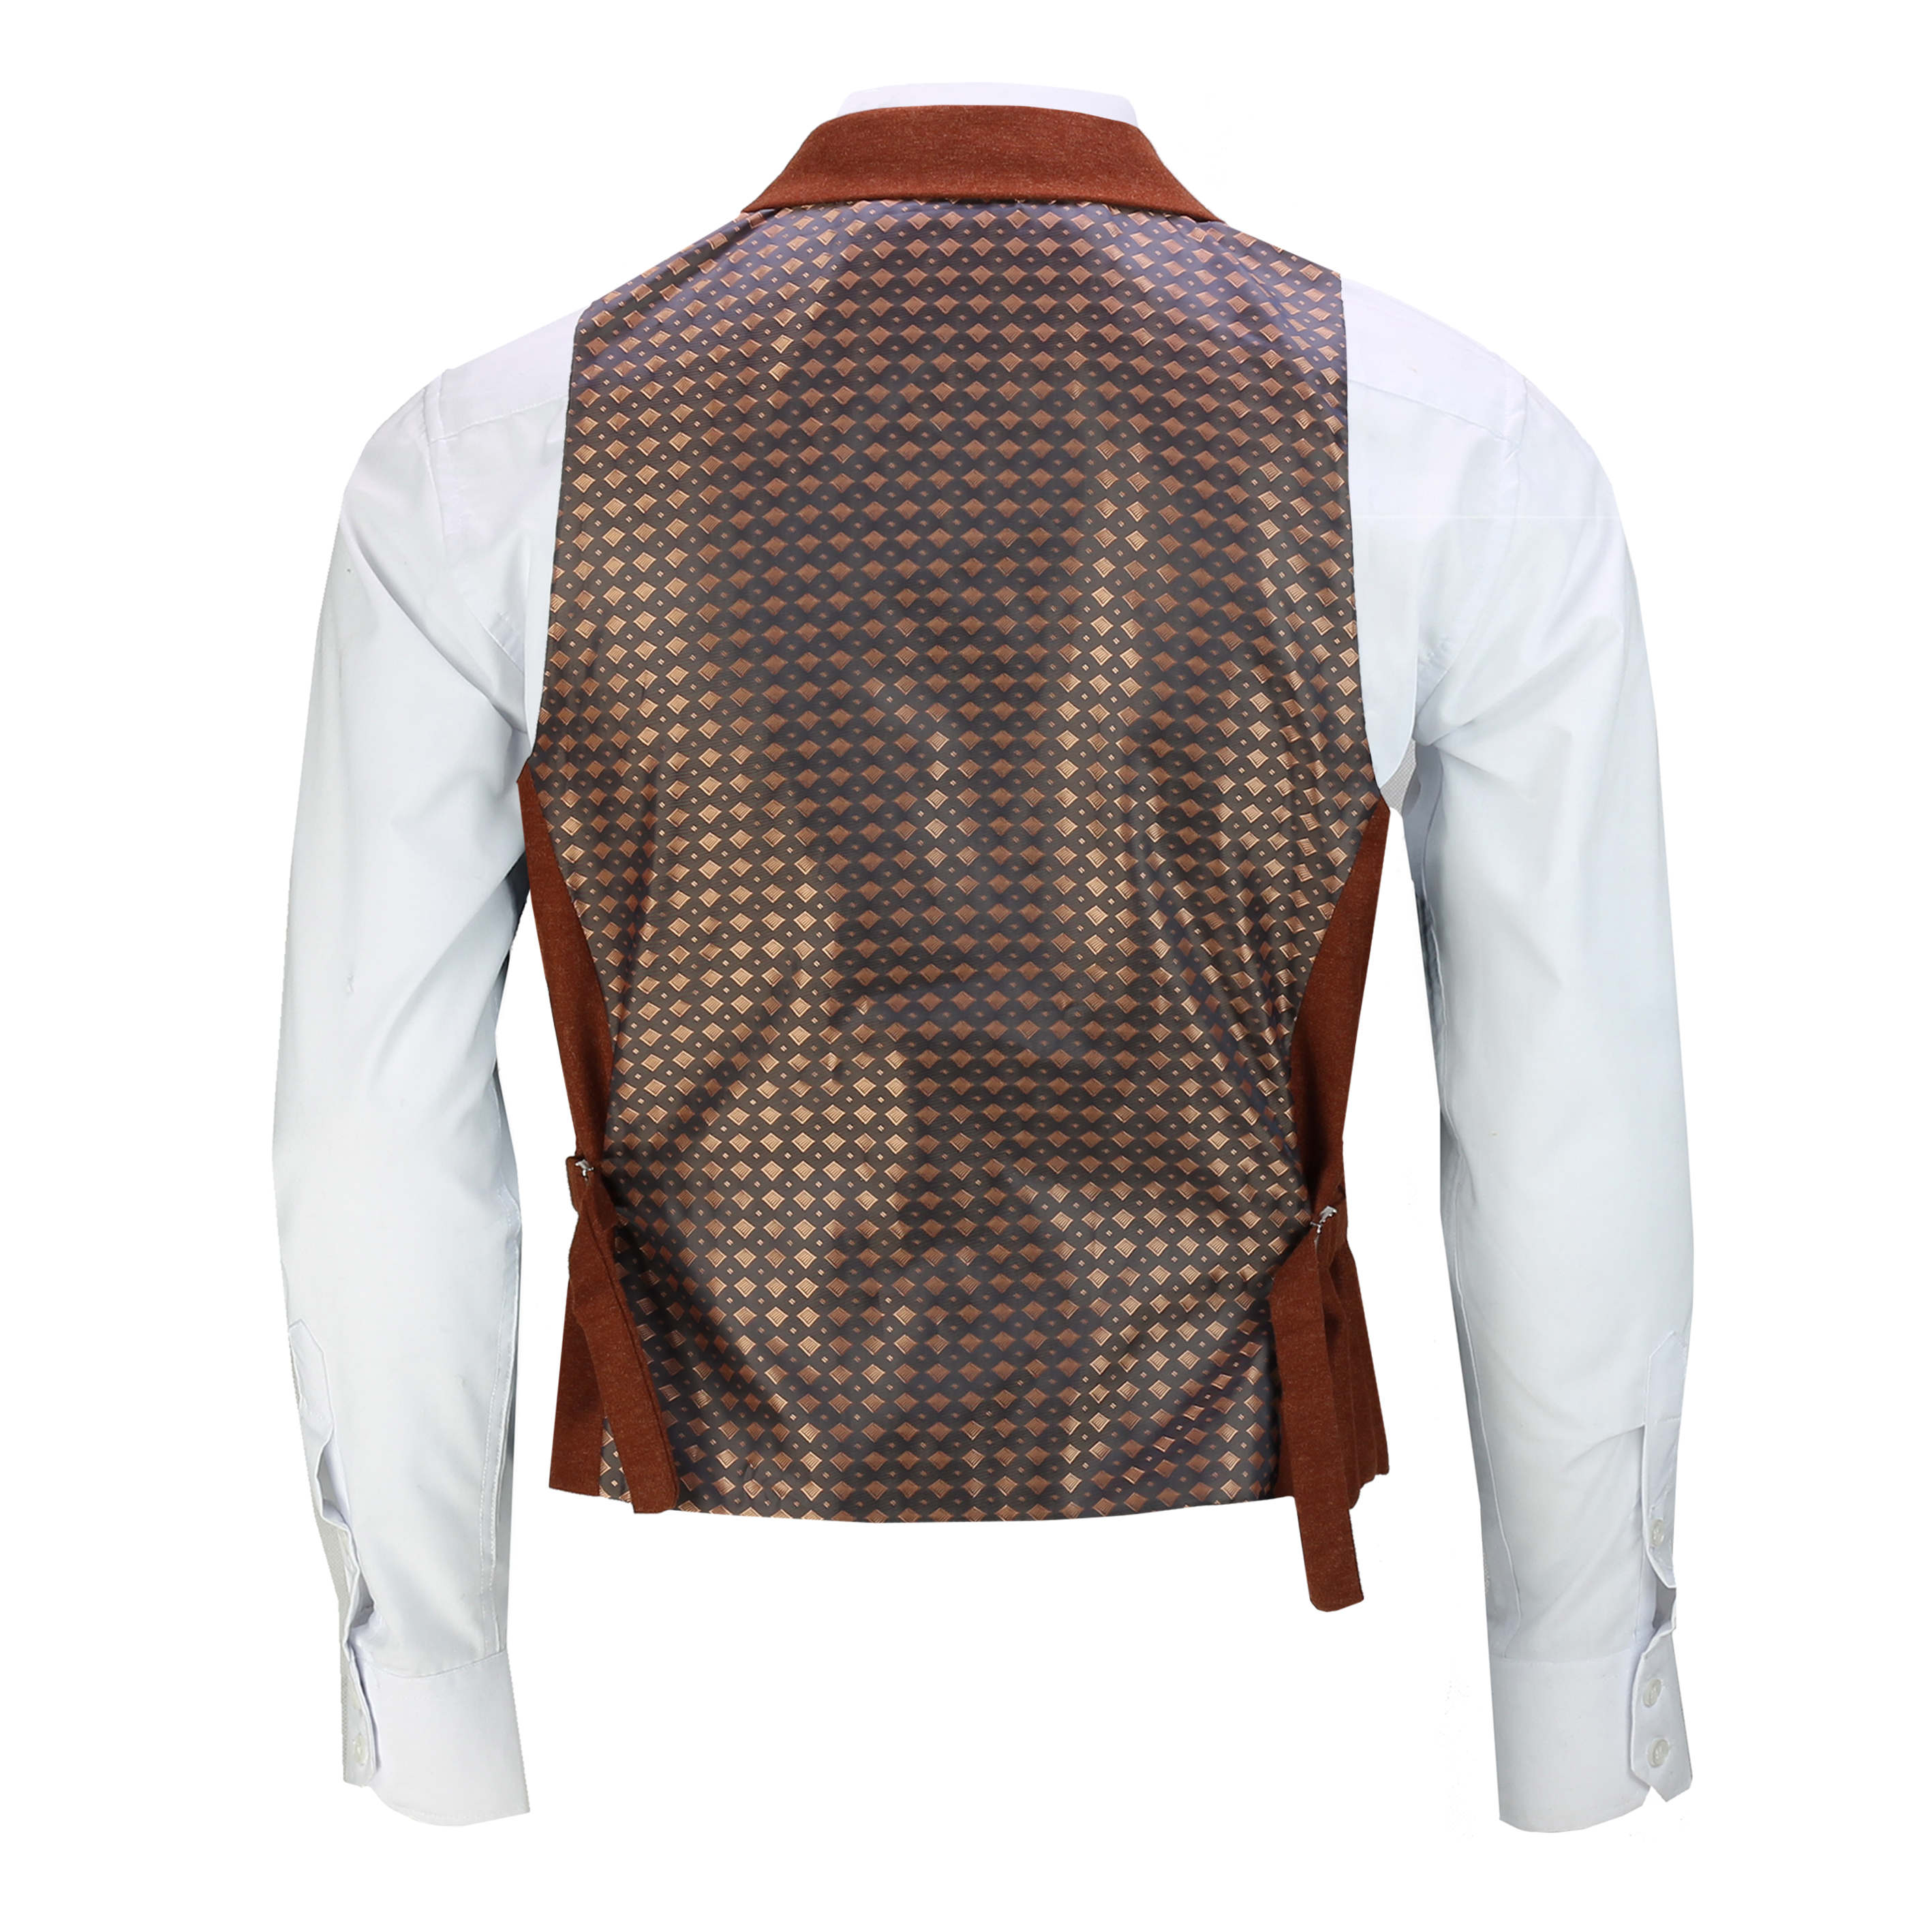 Mens-Classic-Collar-Waistcoat-Retro-Vintage-Style-Tailored-Fit-Smart-Formal-Vest thumbnail 22